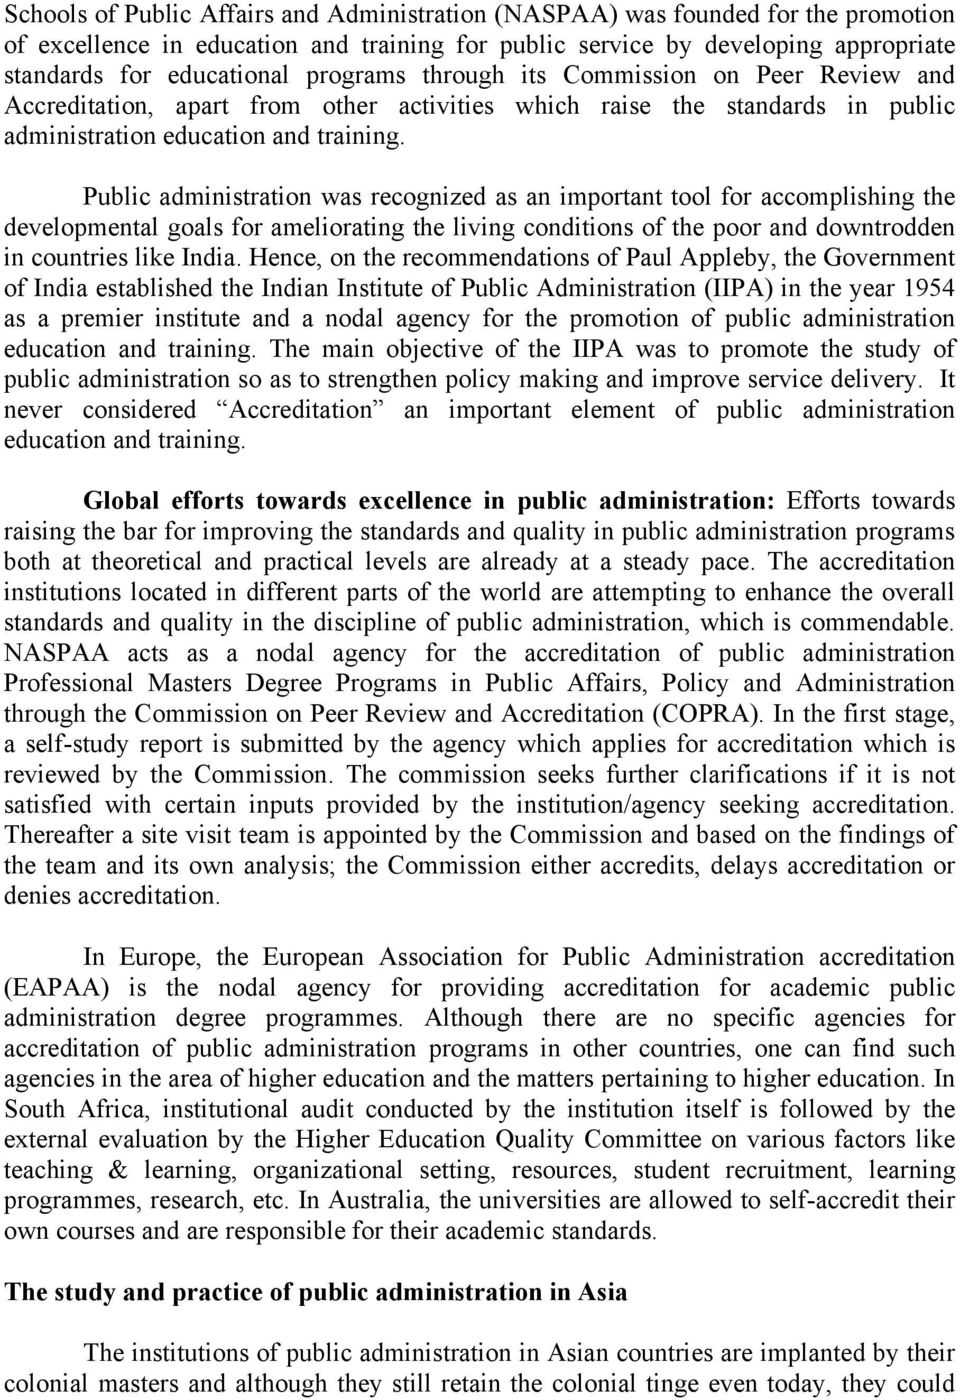 Public administration was recognized as an important tool for accomplishing the developmental goals for ameliorating the living conditions of the poor and downtrodden in countries like India.